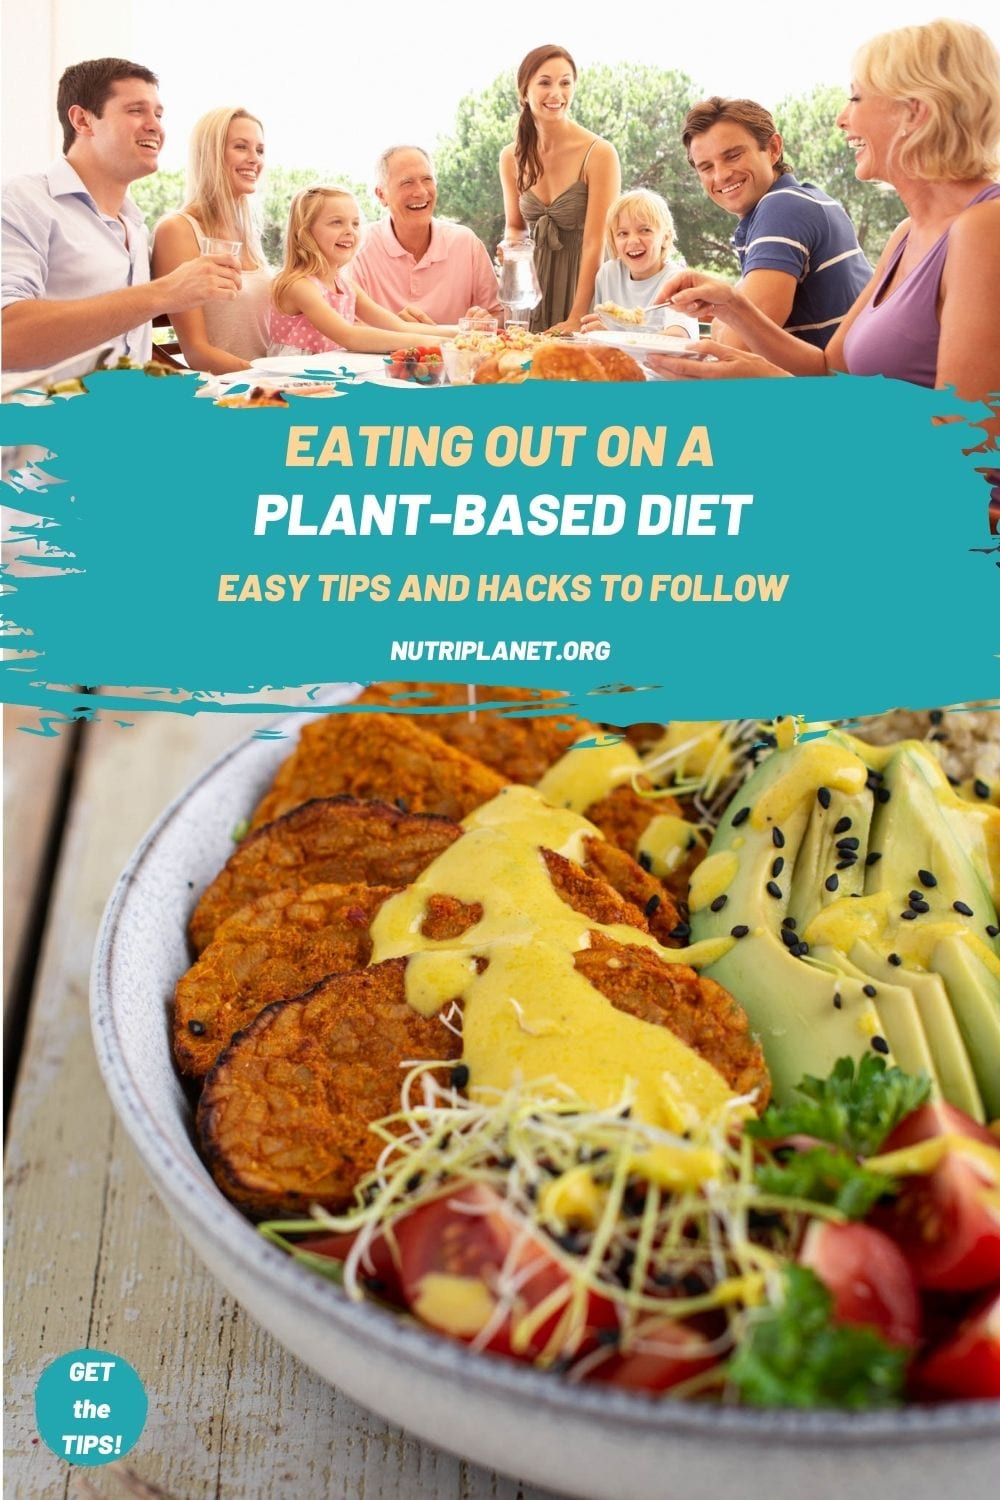 Easy tips and hacks for eating out on plant-based diet. Eating out as a vegan doesn't have to be hard!